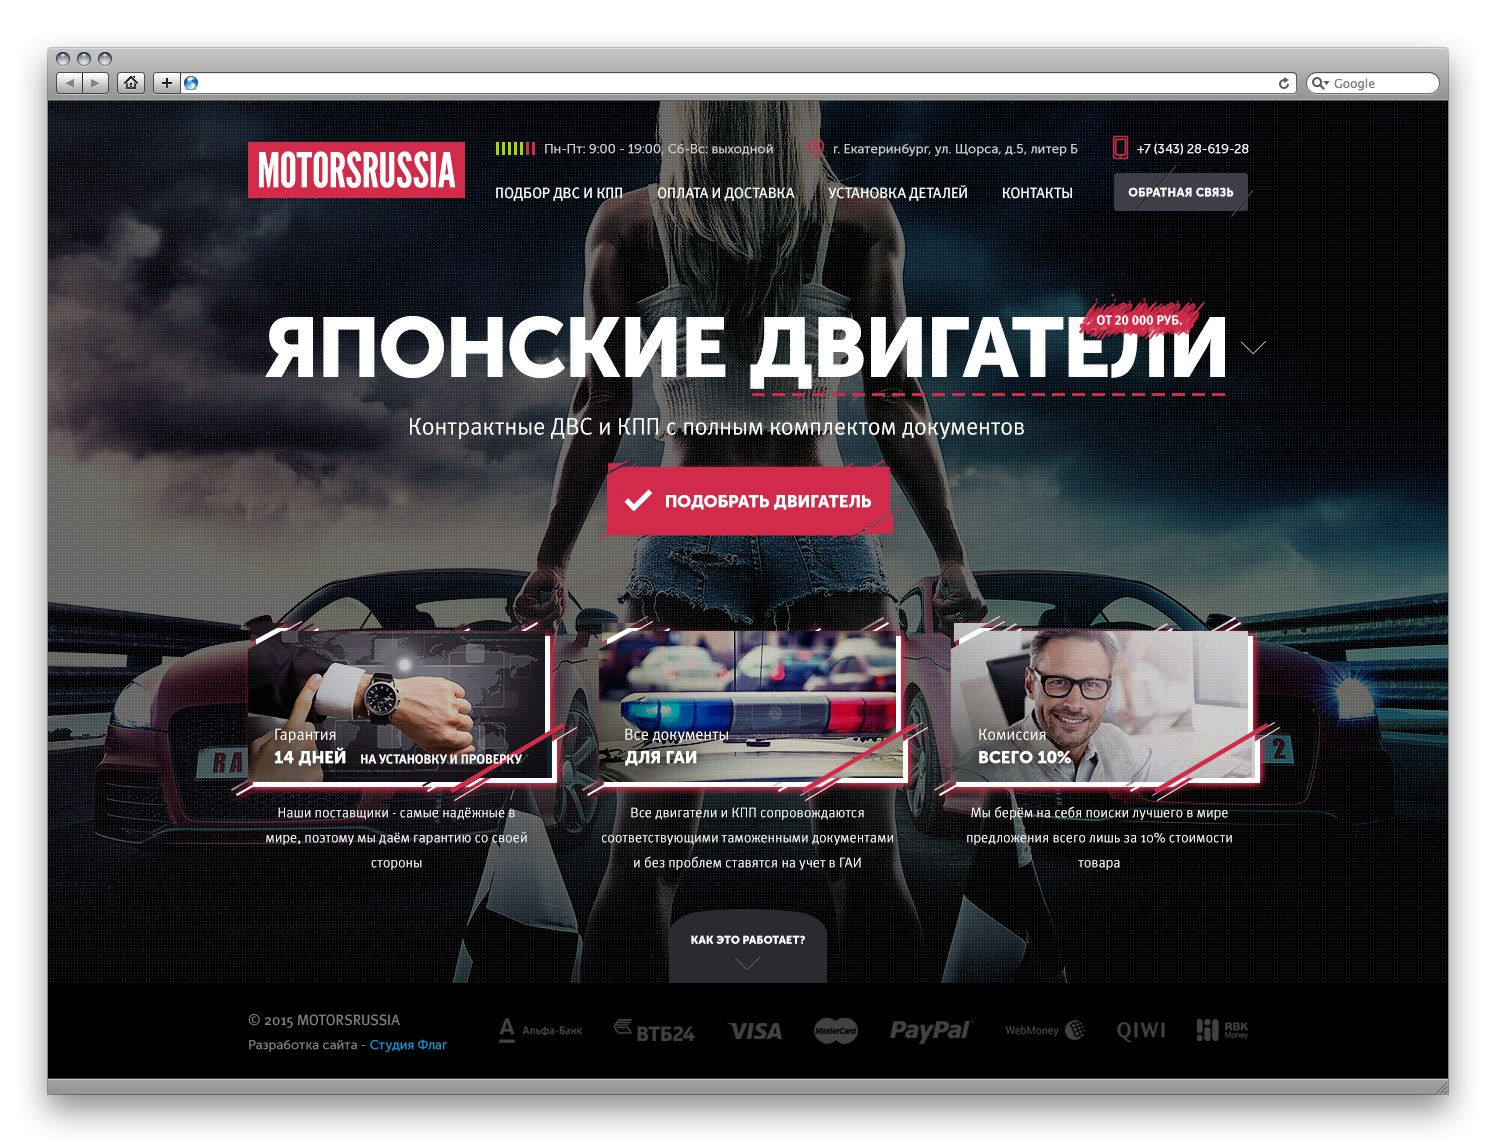 https://flagstudio.ru/wp-content/uploads/2015/09/Главная3.jpg